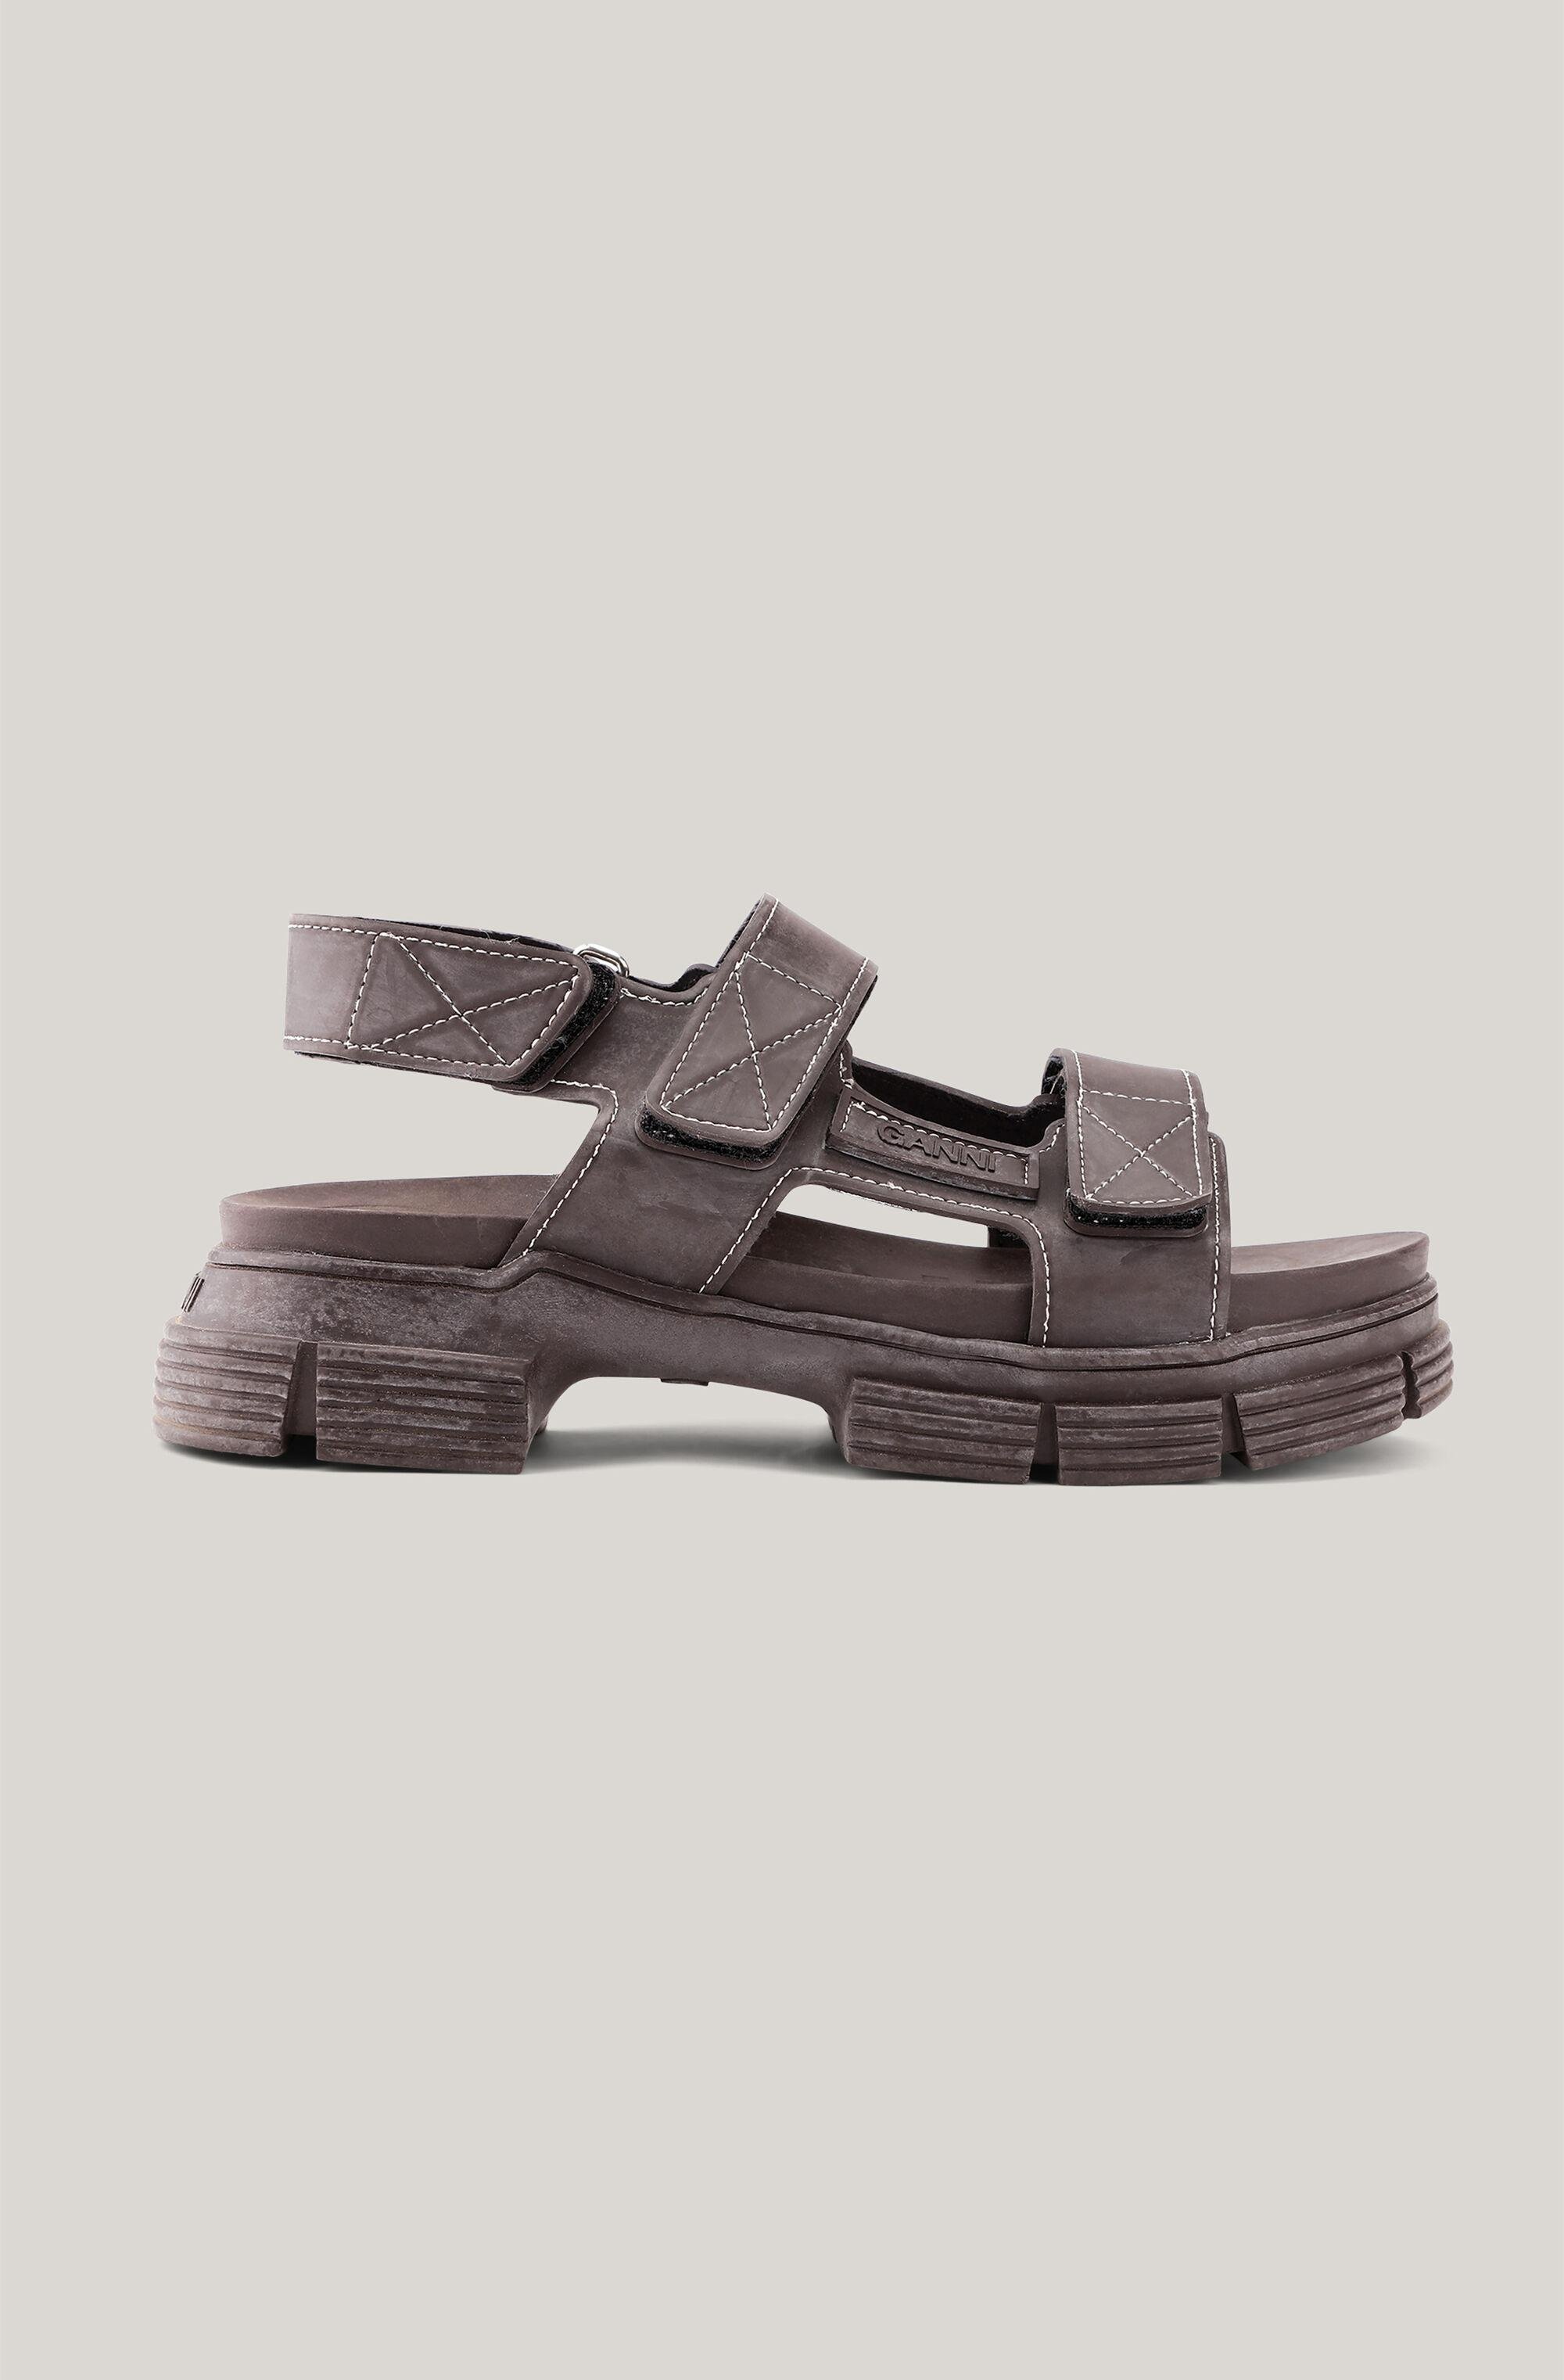 Recycled Rubber Velcro Sandal